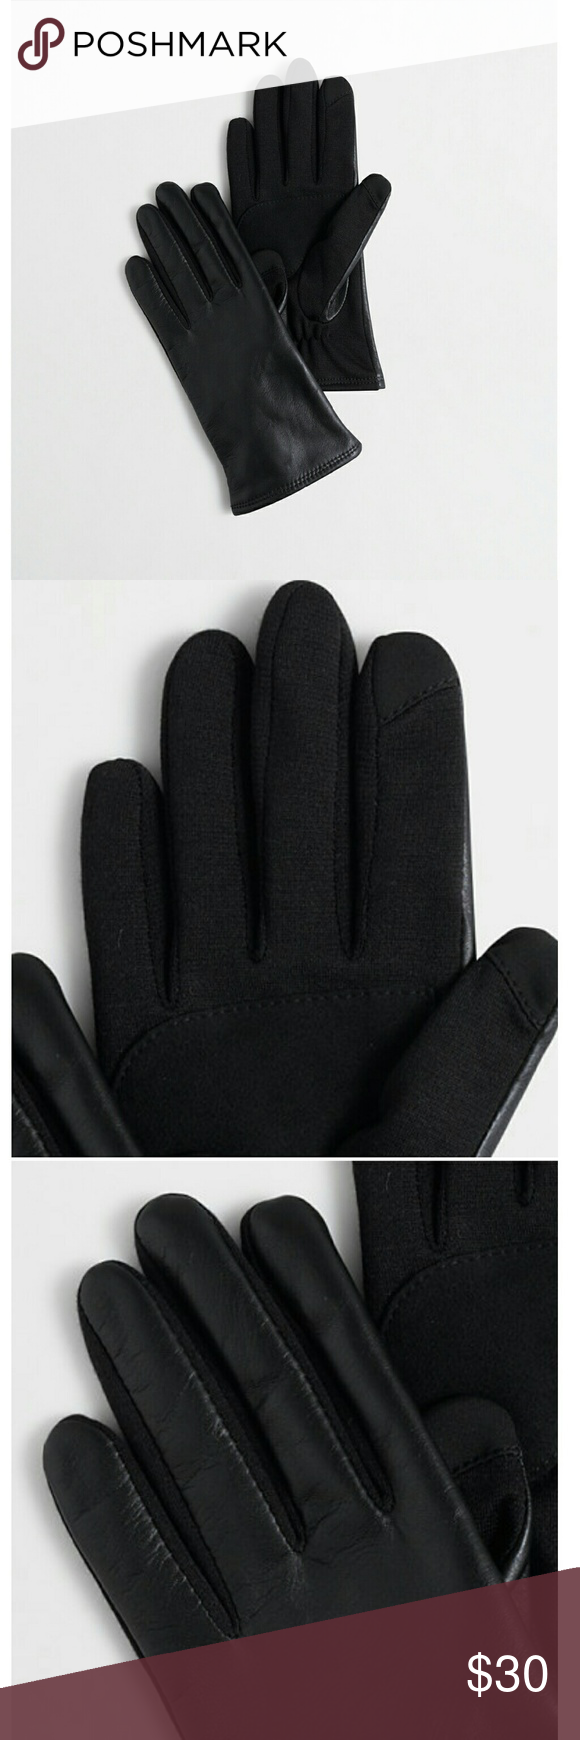 J. Crew Leather Tech Gloves Leather/metallized fiber tips. Acrylic lining. J. Crew Accessories Gloves & Mittens